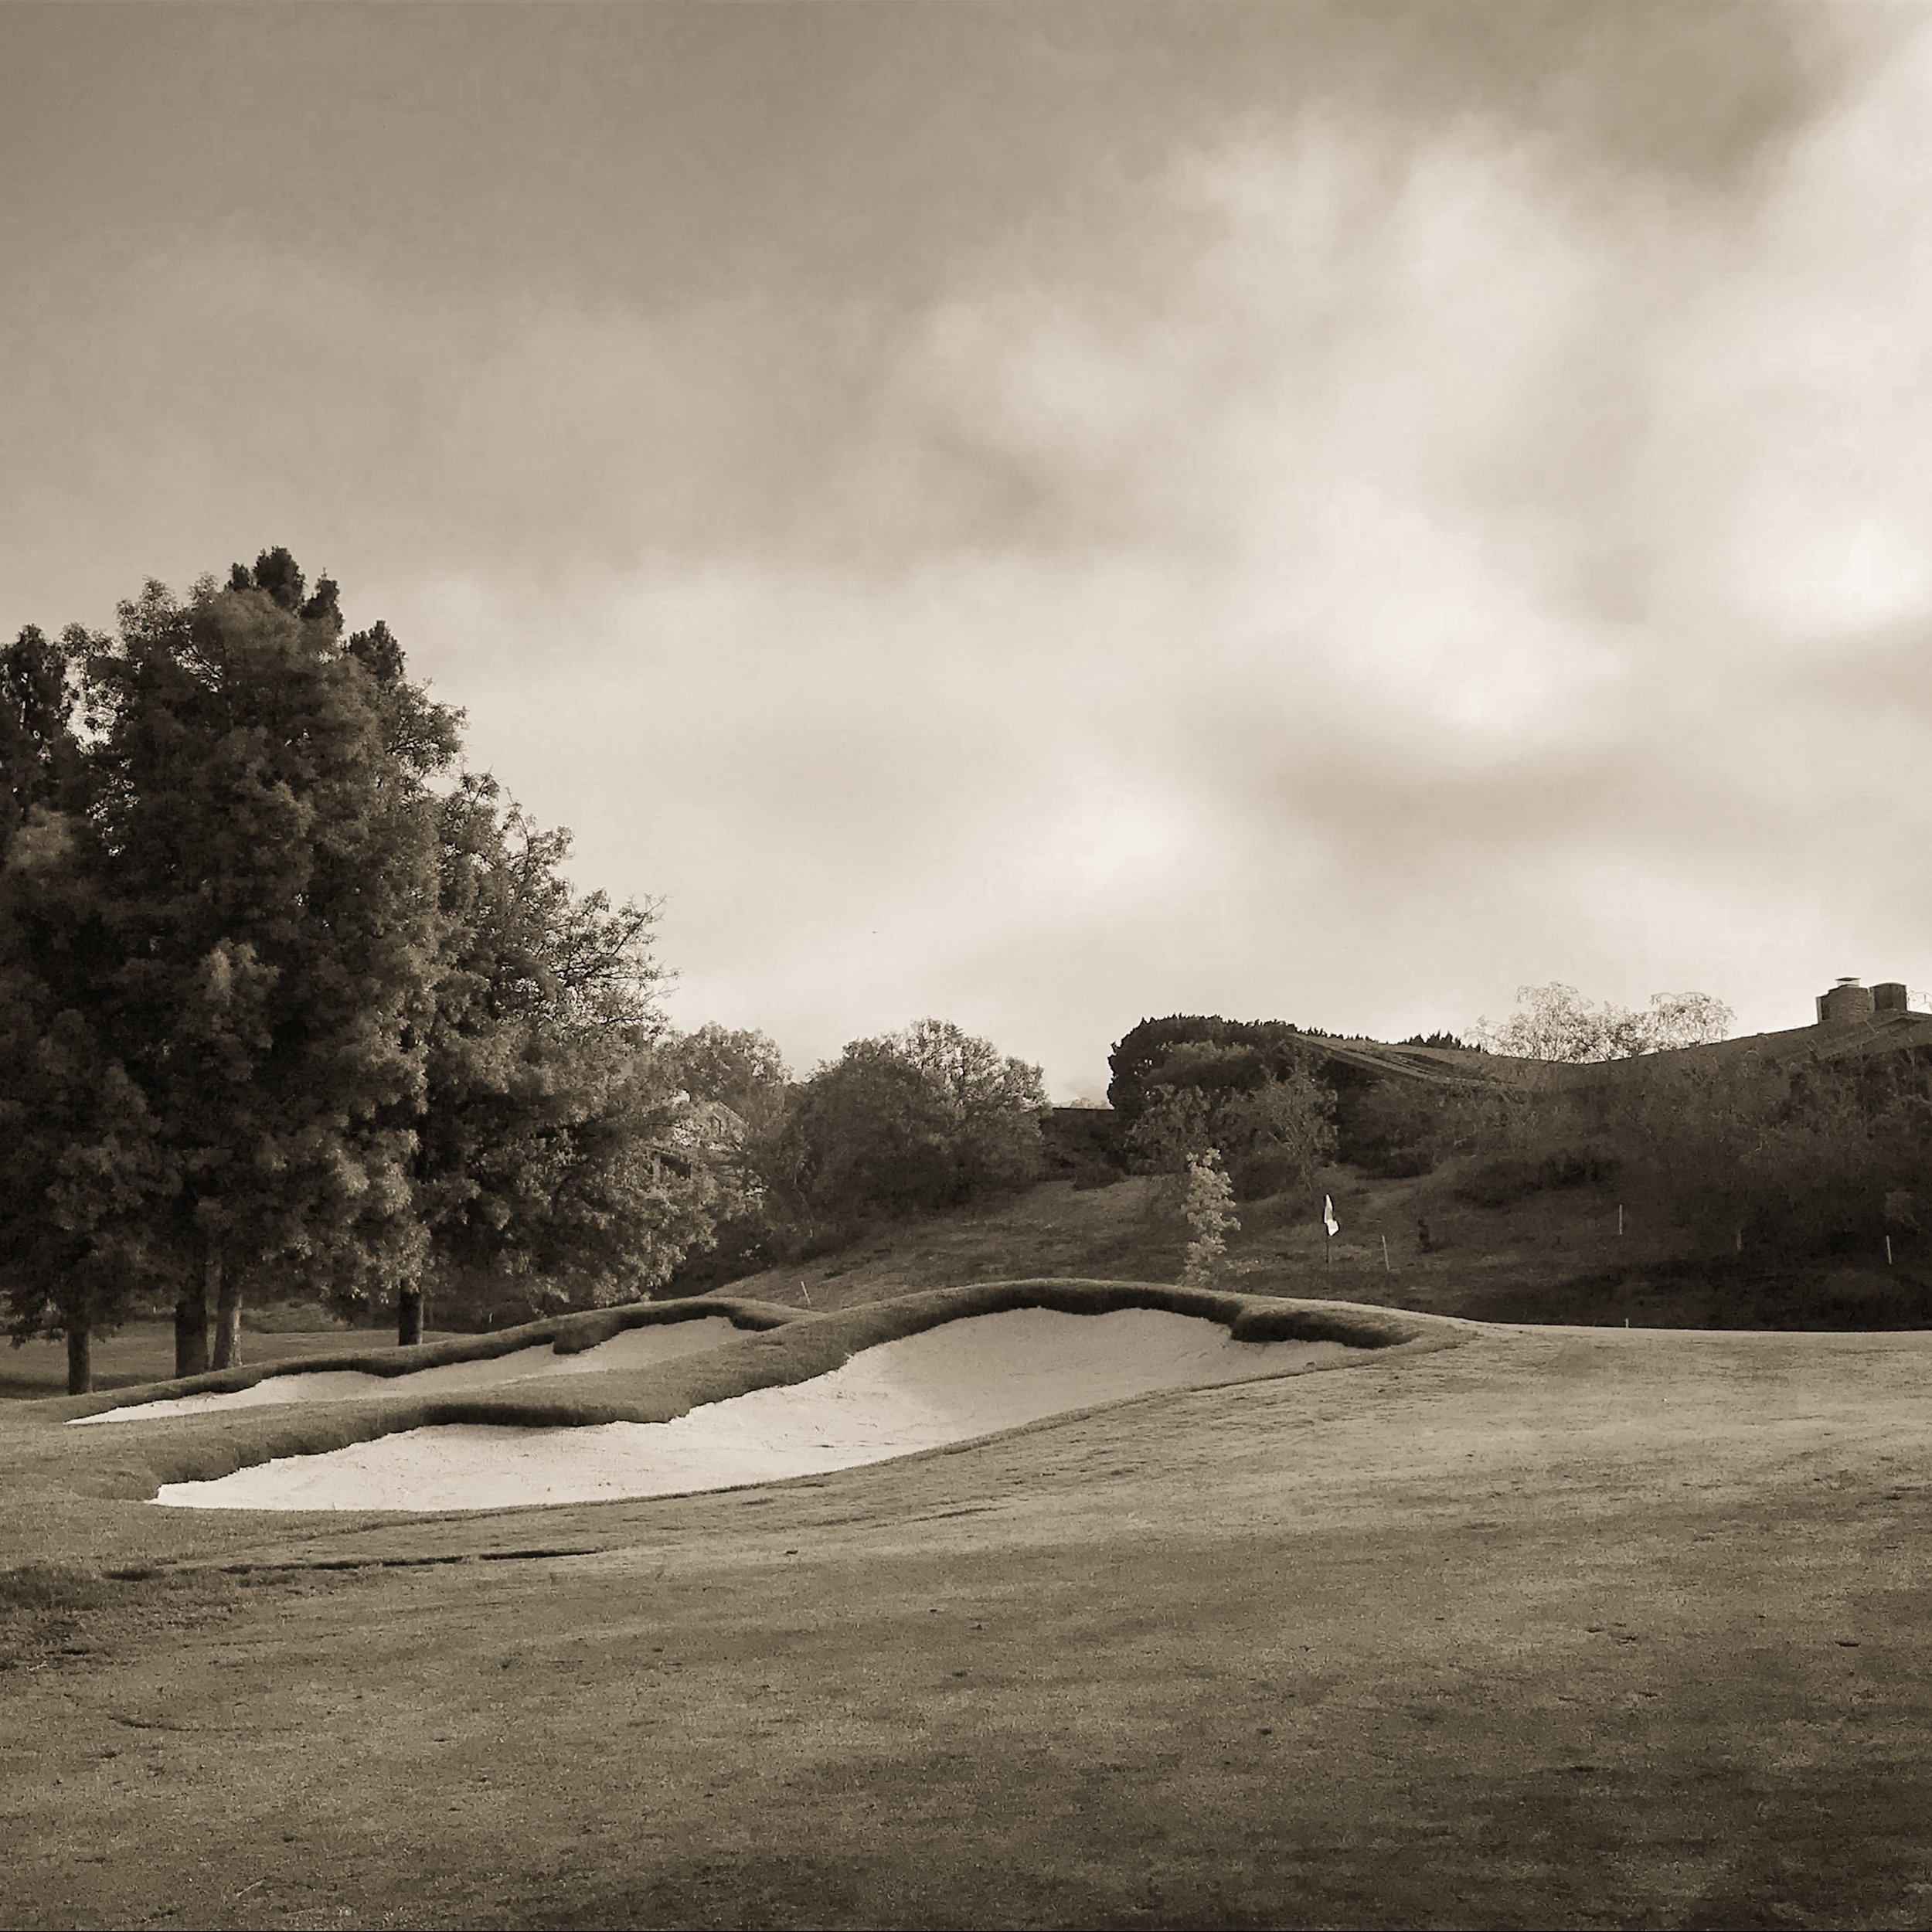 The pair of greenside bunkers at the 12th